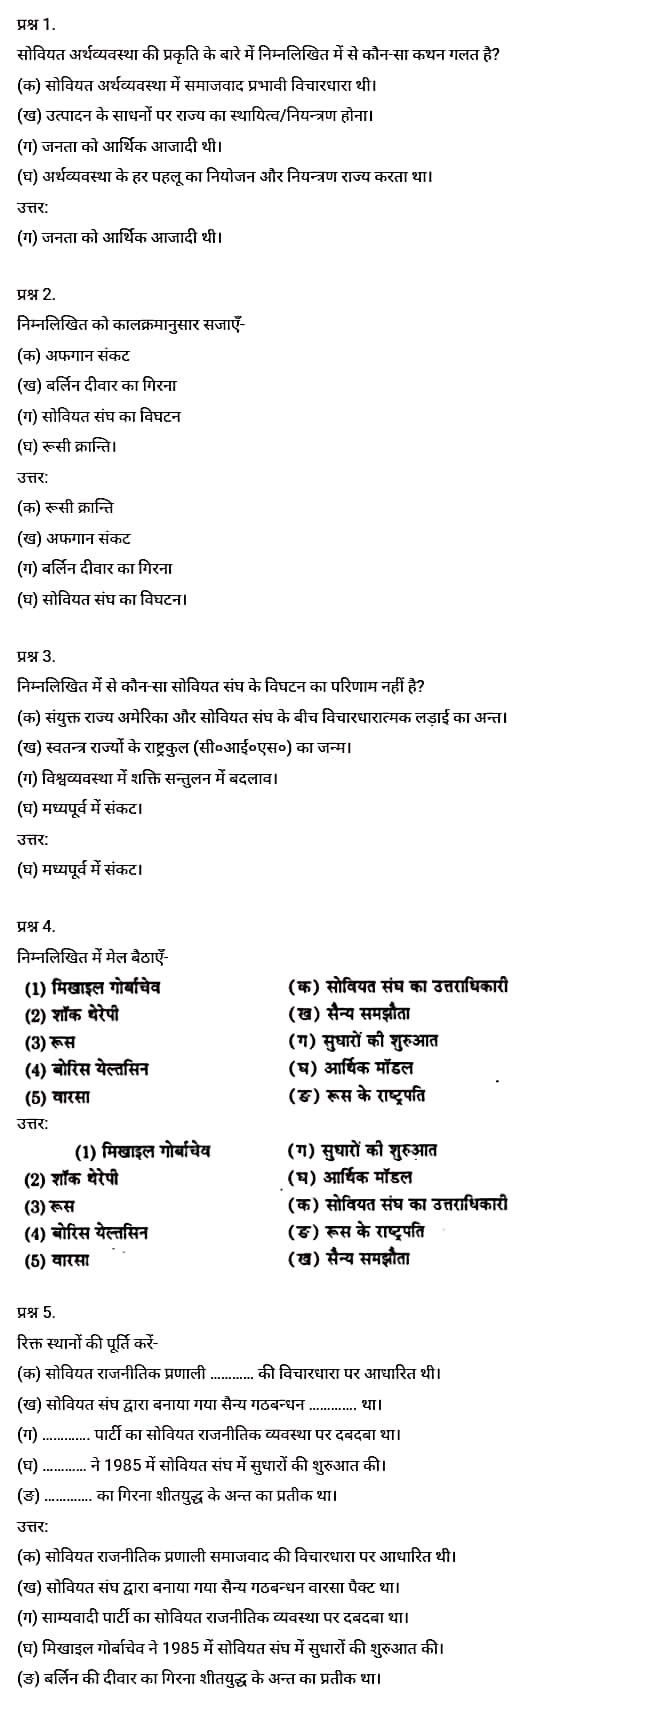 UP Board Solutions for Class 12 Civics Chapter 2 The End of Bipolarity (दो ध्रुवीयता का अंत)